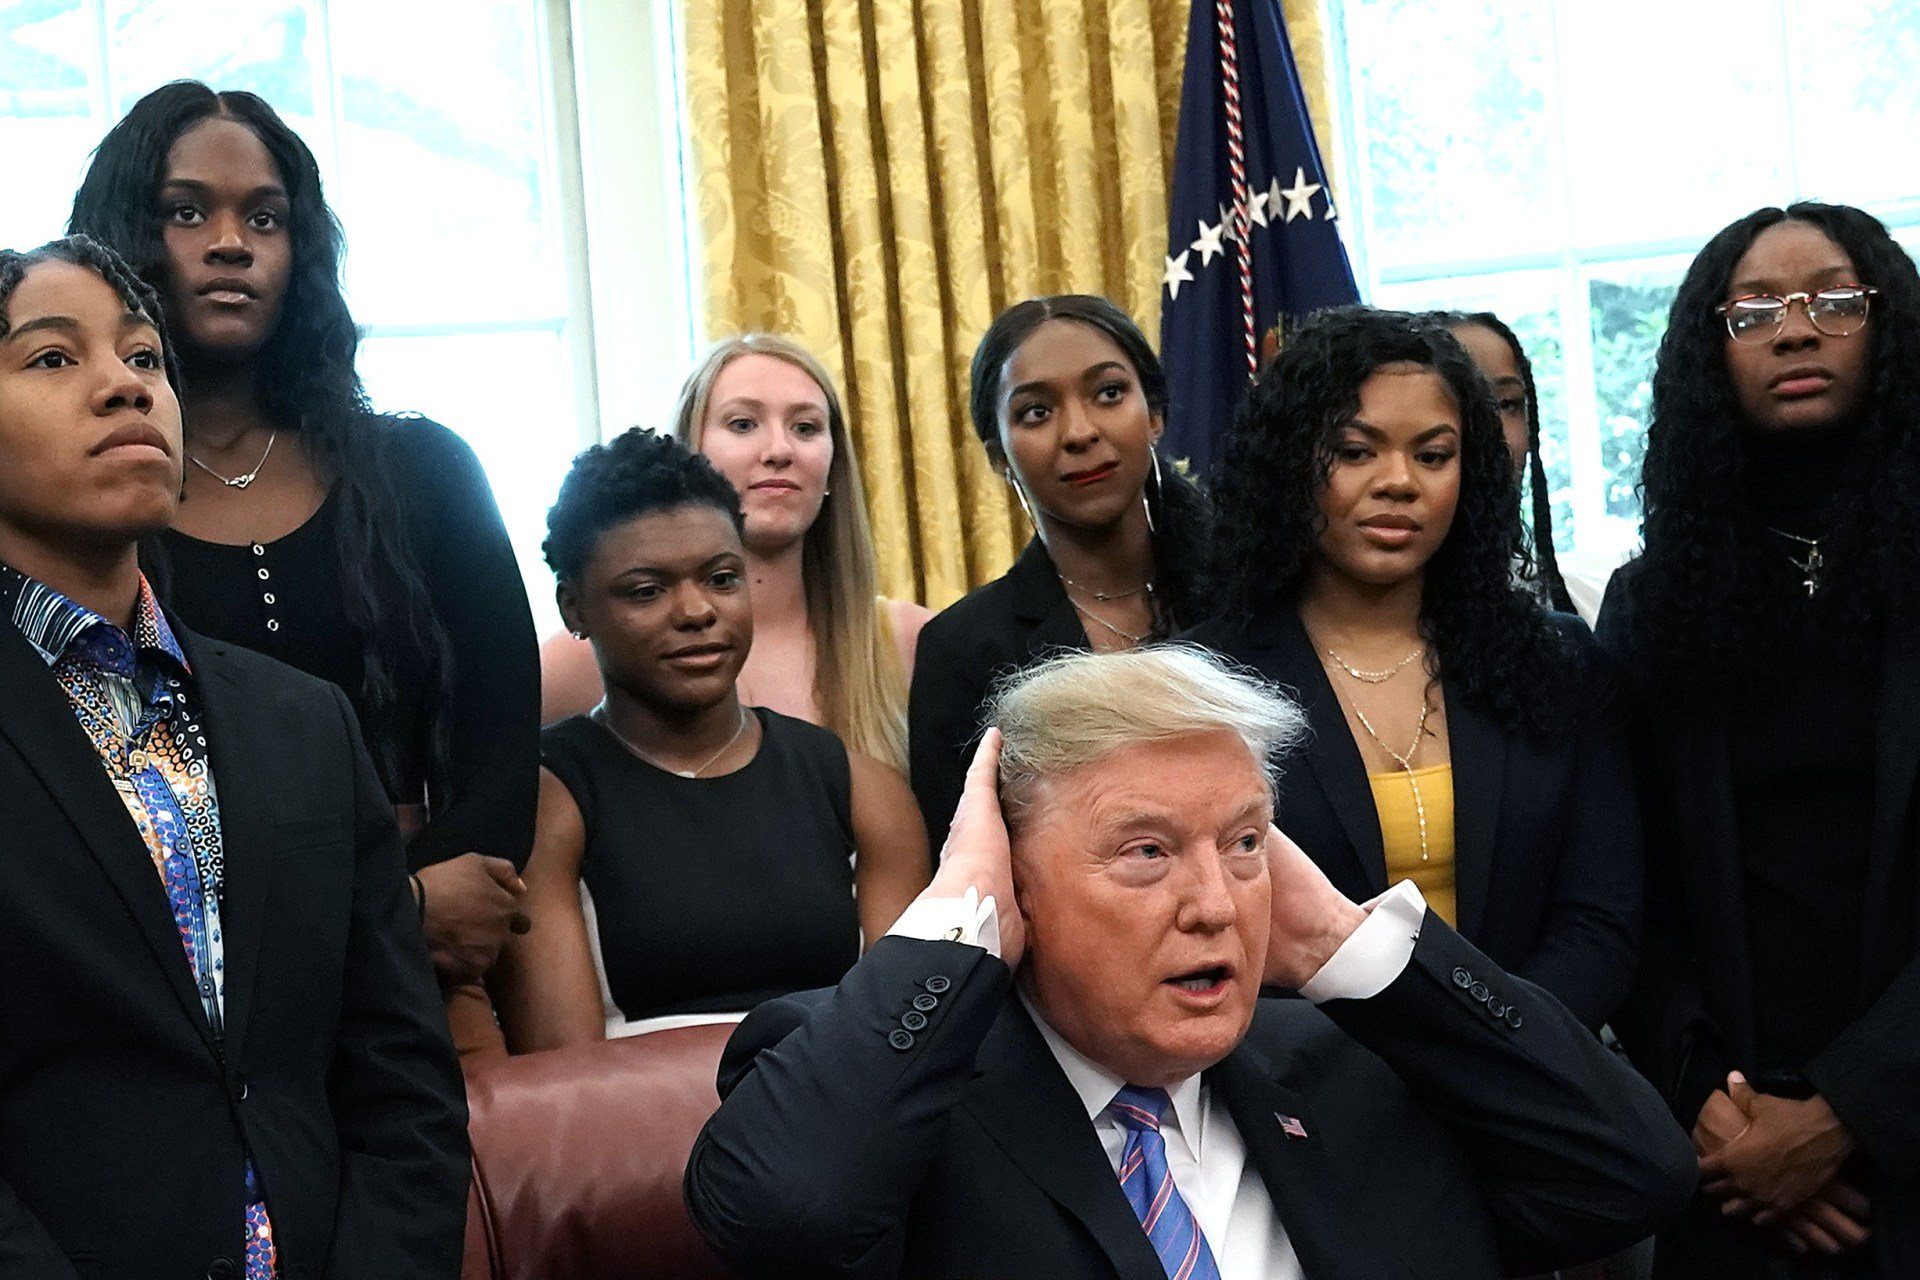 Trump With Baylor WB.jpg